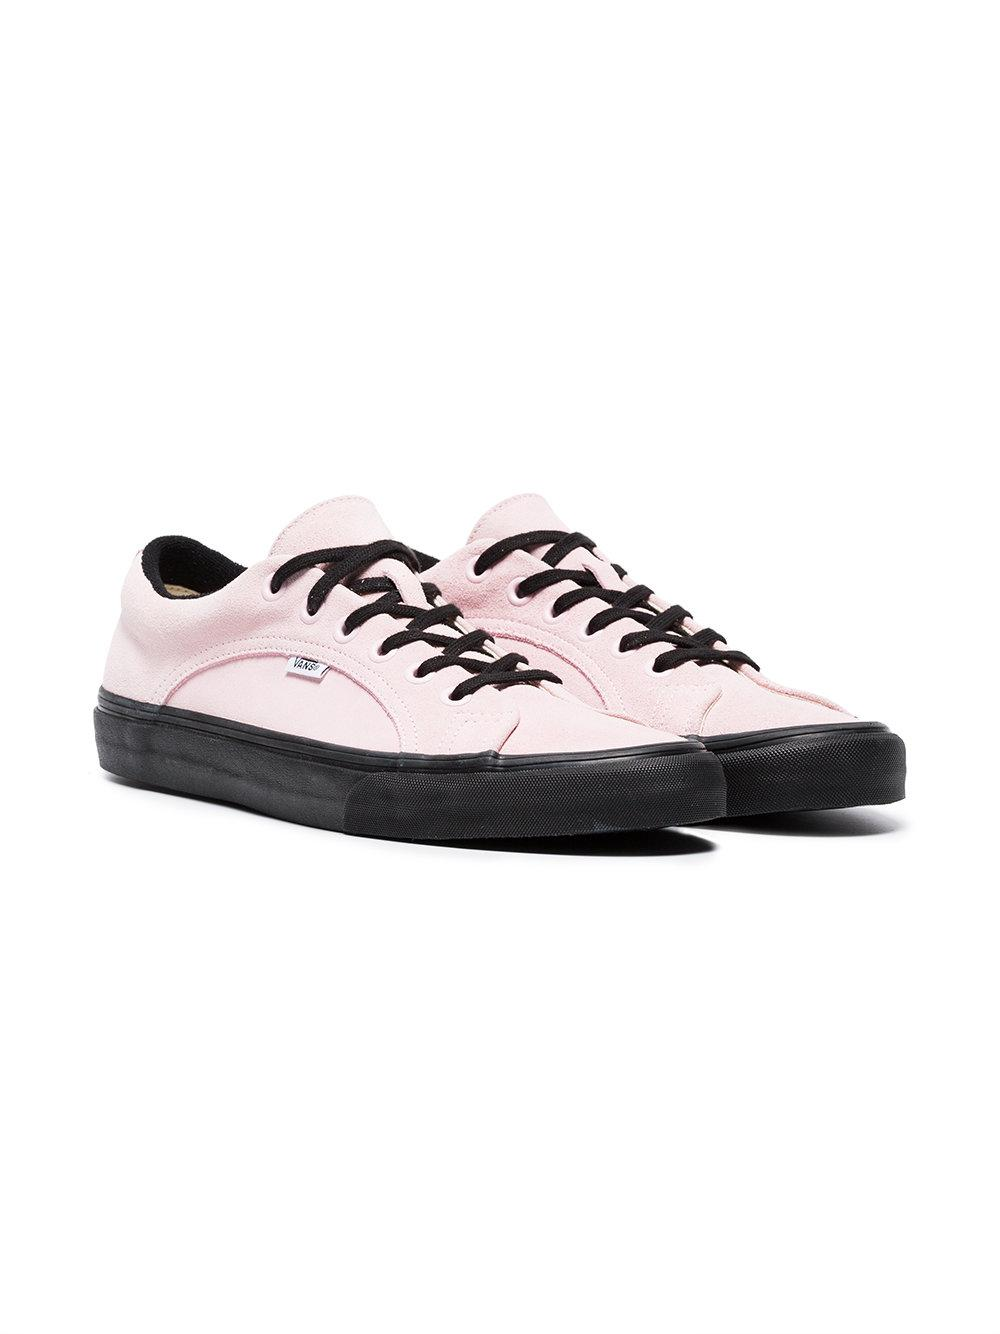 Vans Lampin Marshmallow Trainers in